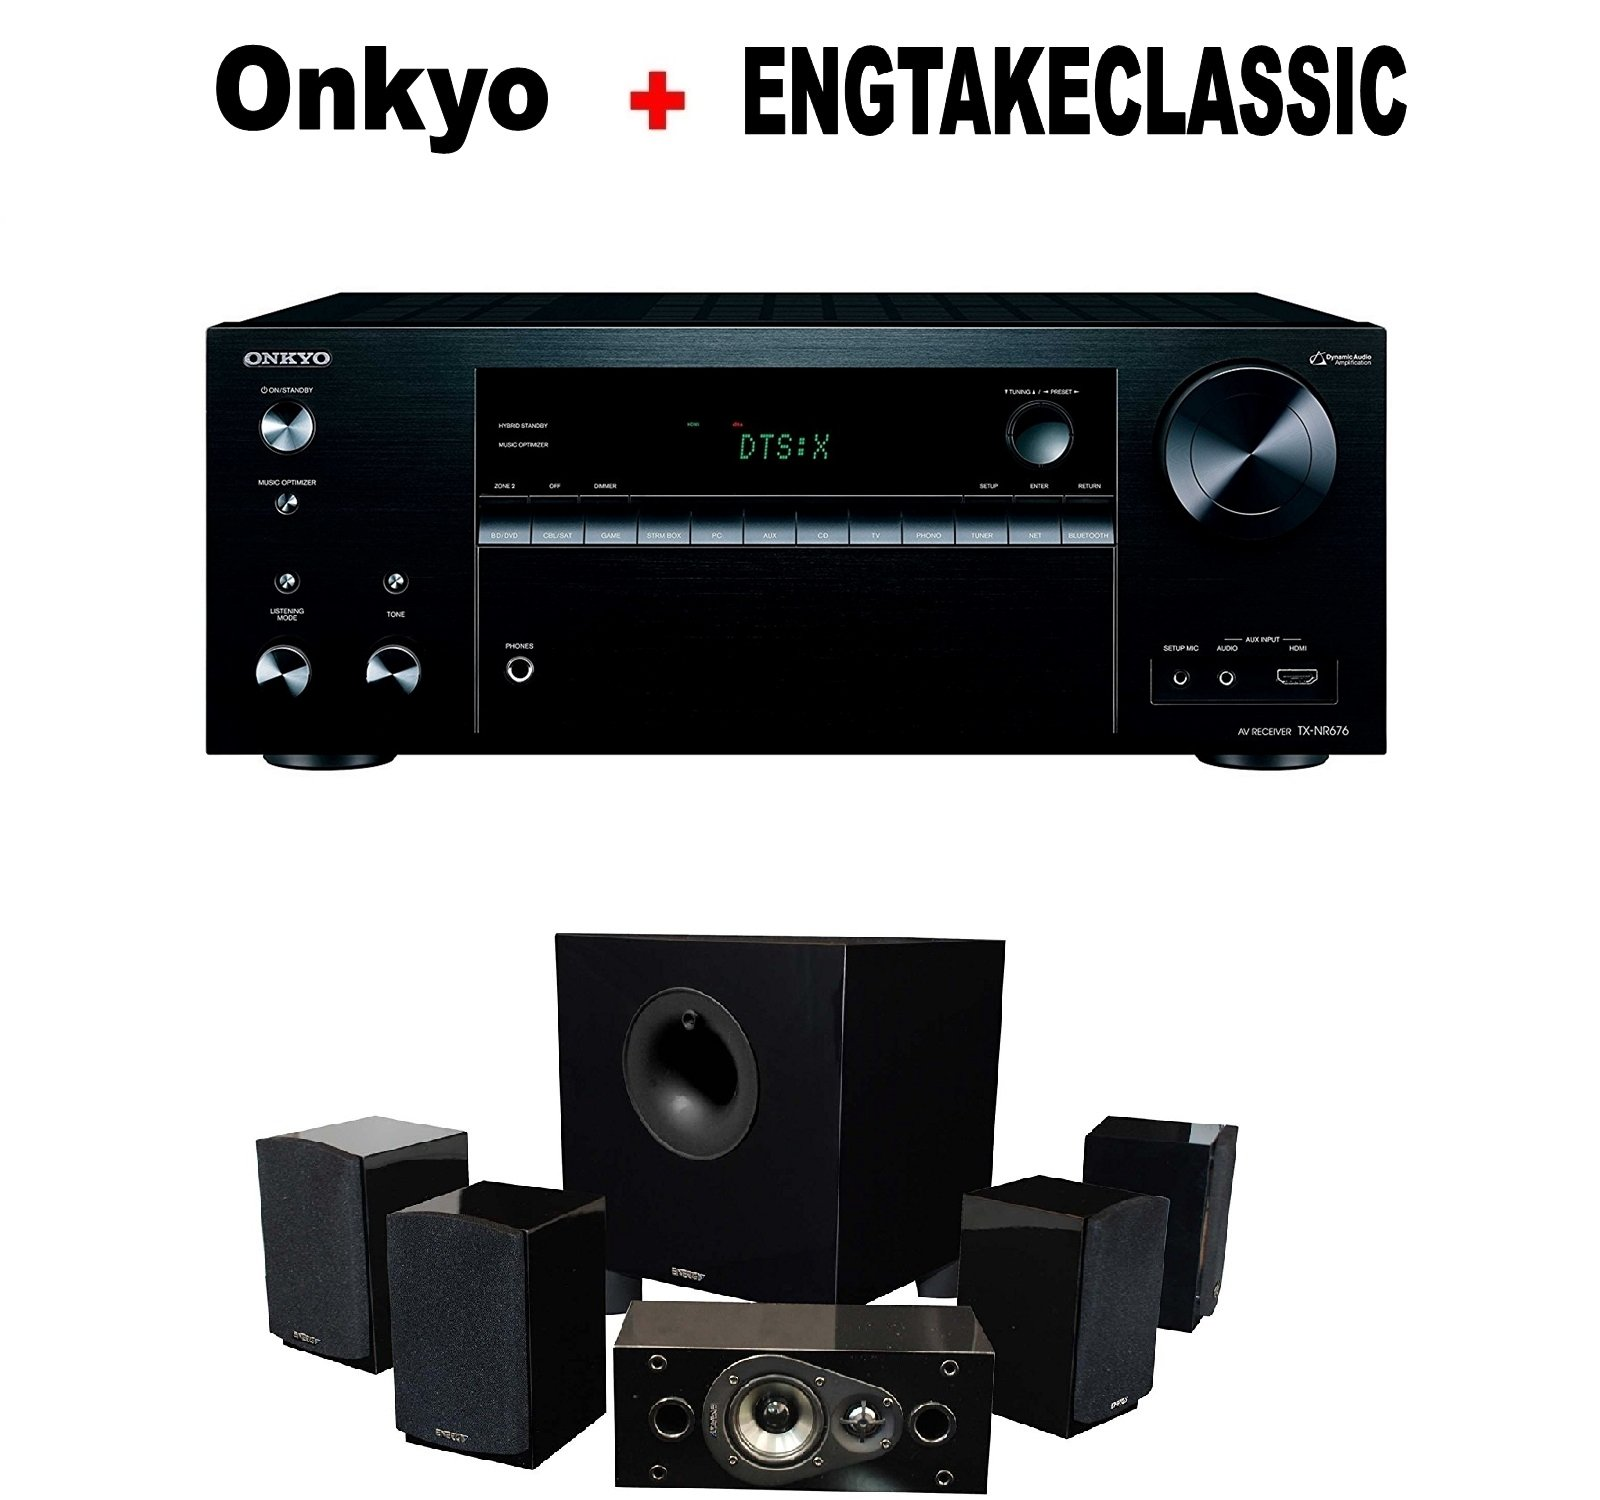 Onkyo Powerful Audio & Video Component Receiver Black (TX-NR676) + Energy 5.1 Take Classic Home Entertainment System (Set of Six, Black) Bundle